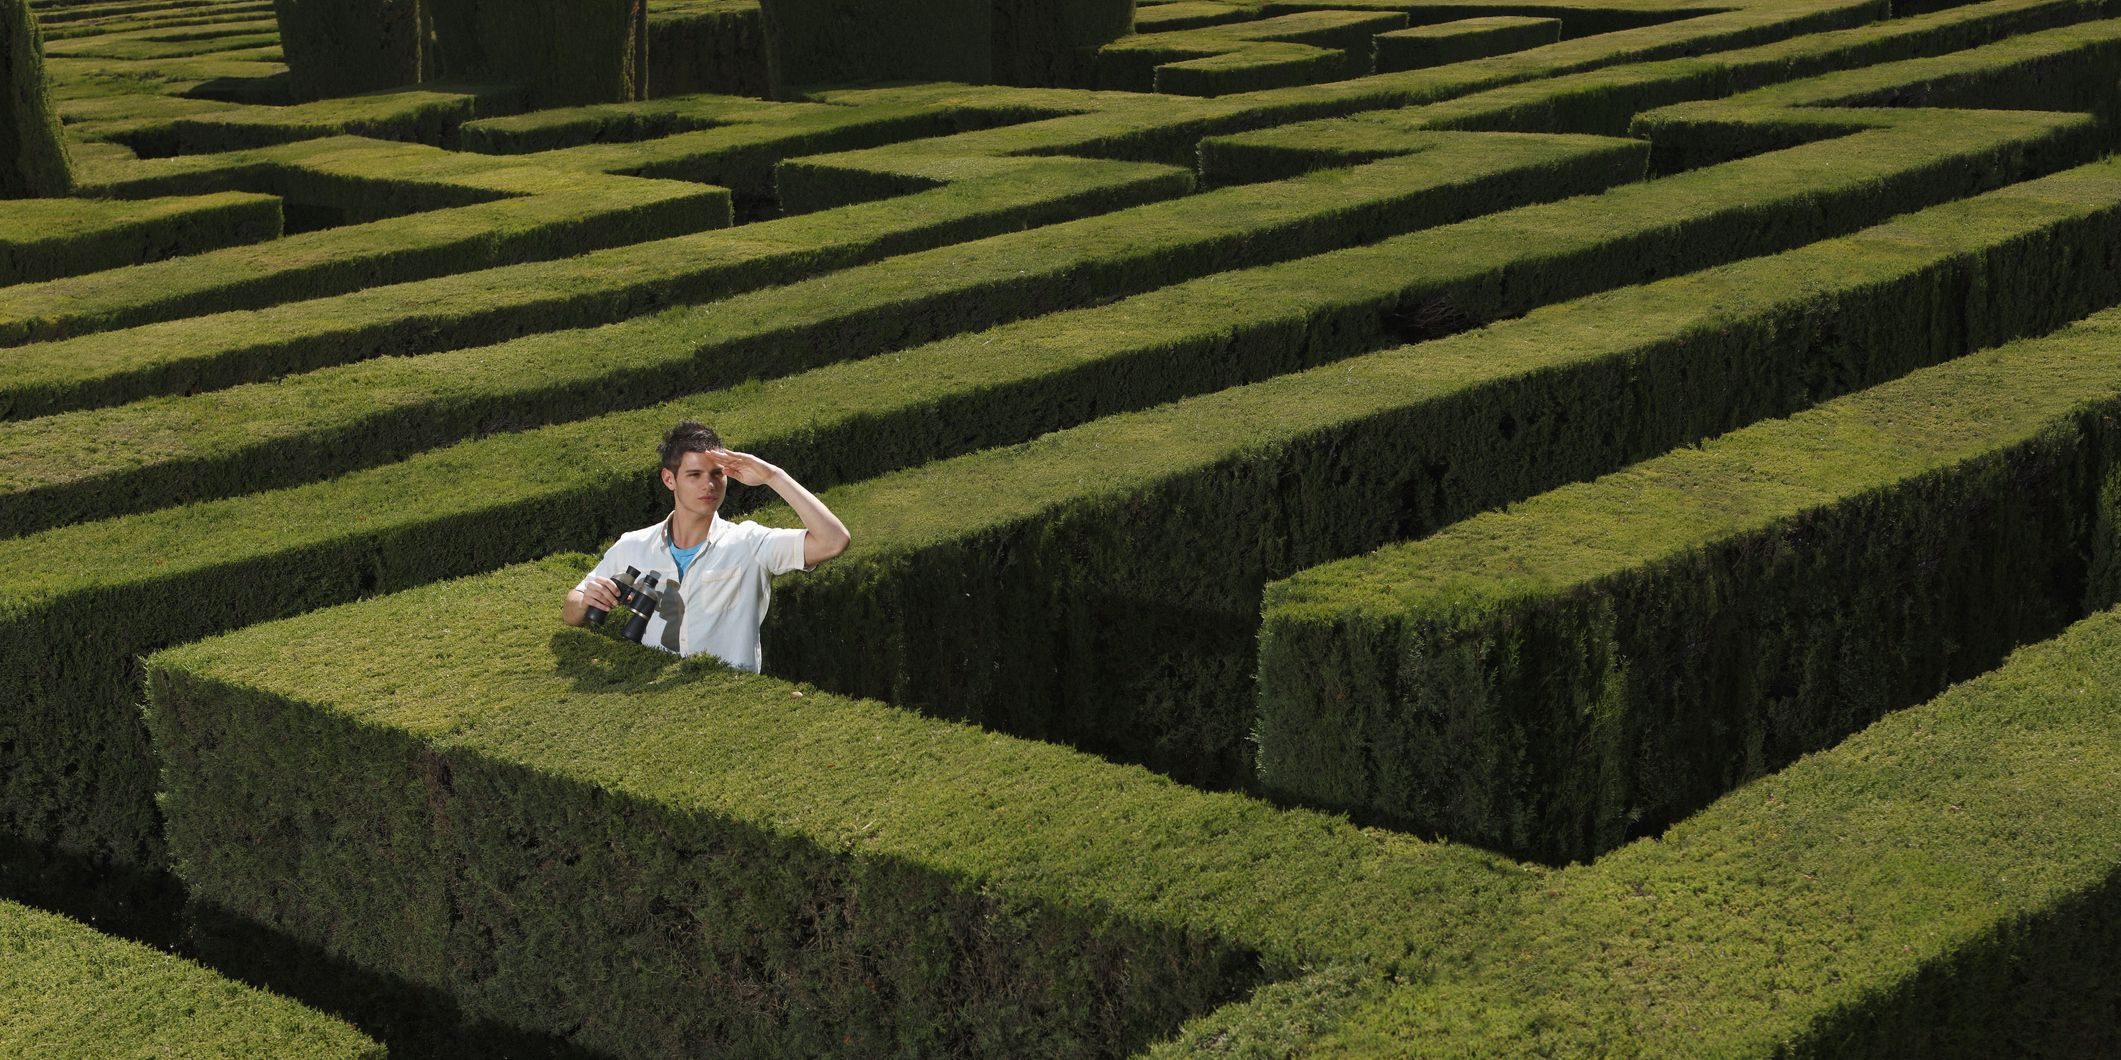 Young man lost in hedge maze